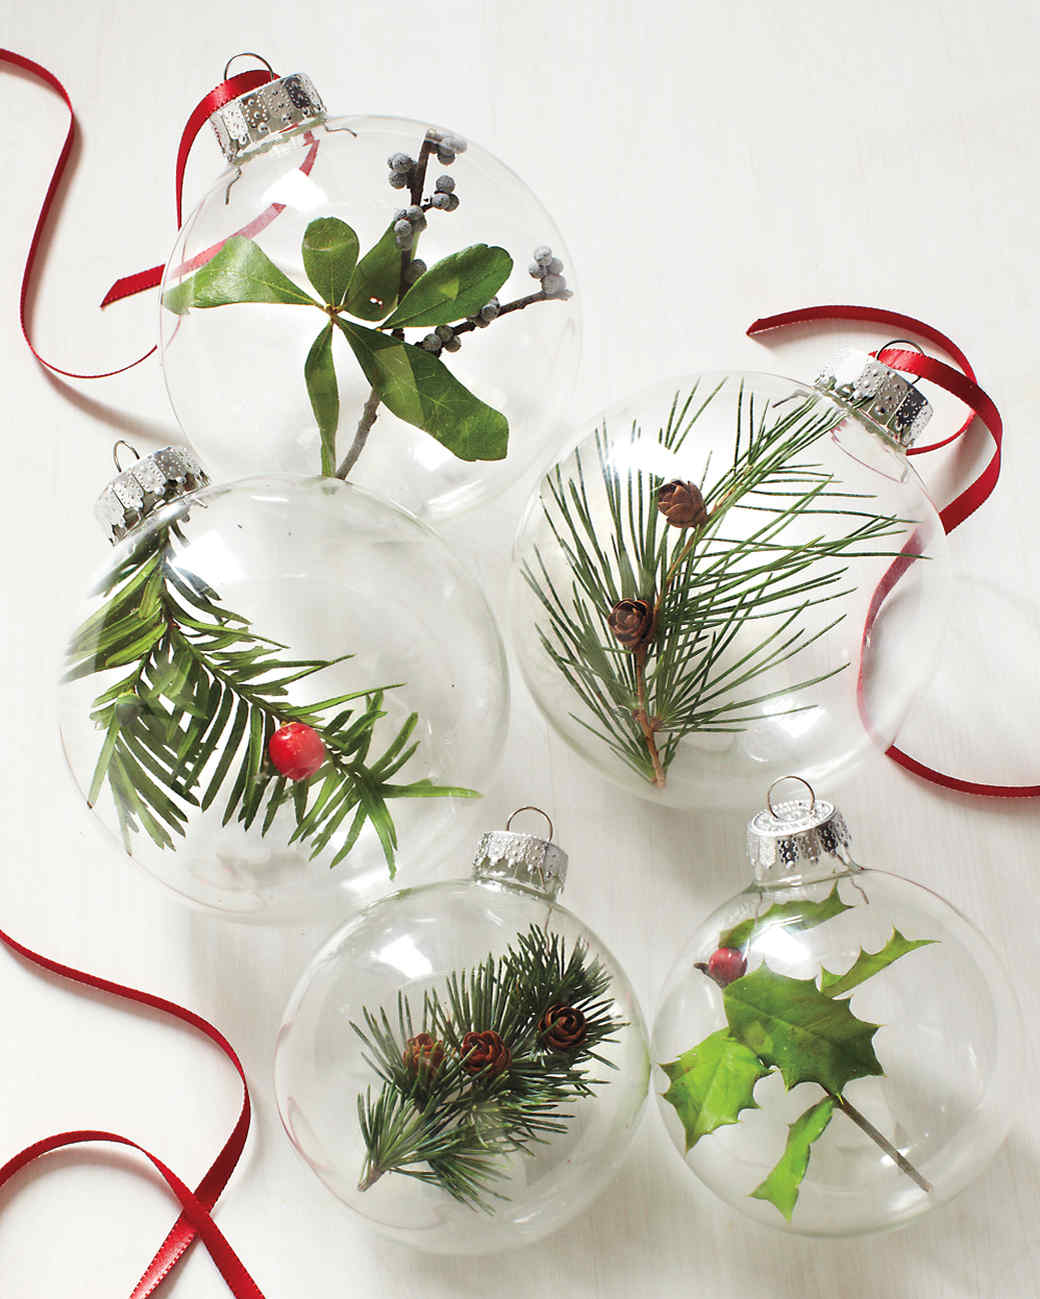 20 of our most memorable diy christmas ornament projects martha stewart